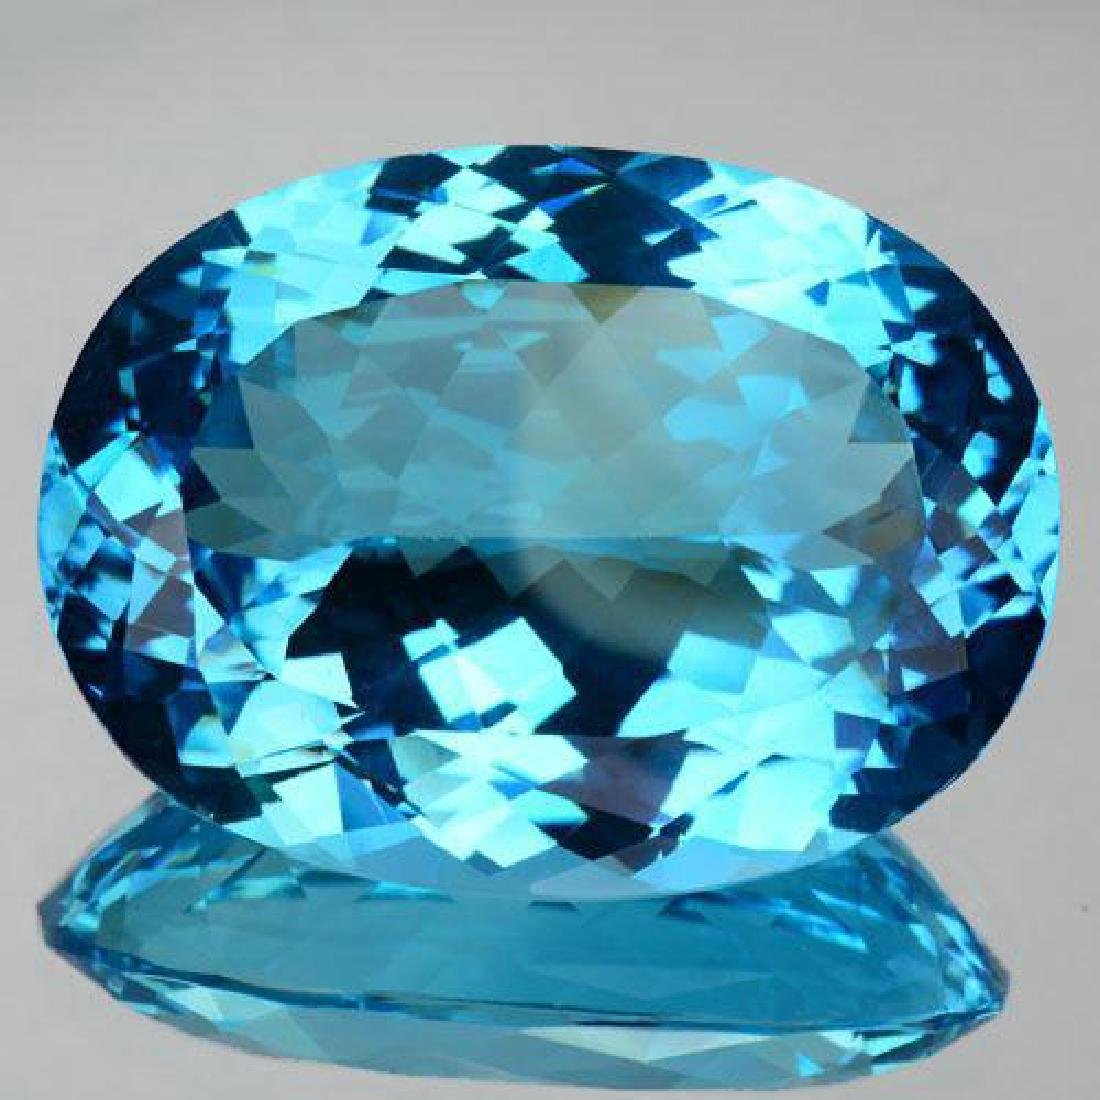 Museum Qulaity 84.99cts AAA Swiss Blue Topaz